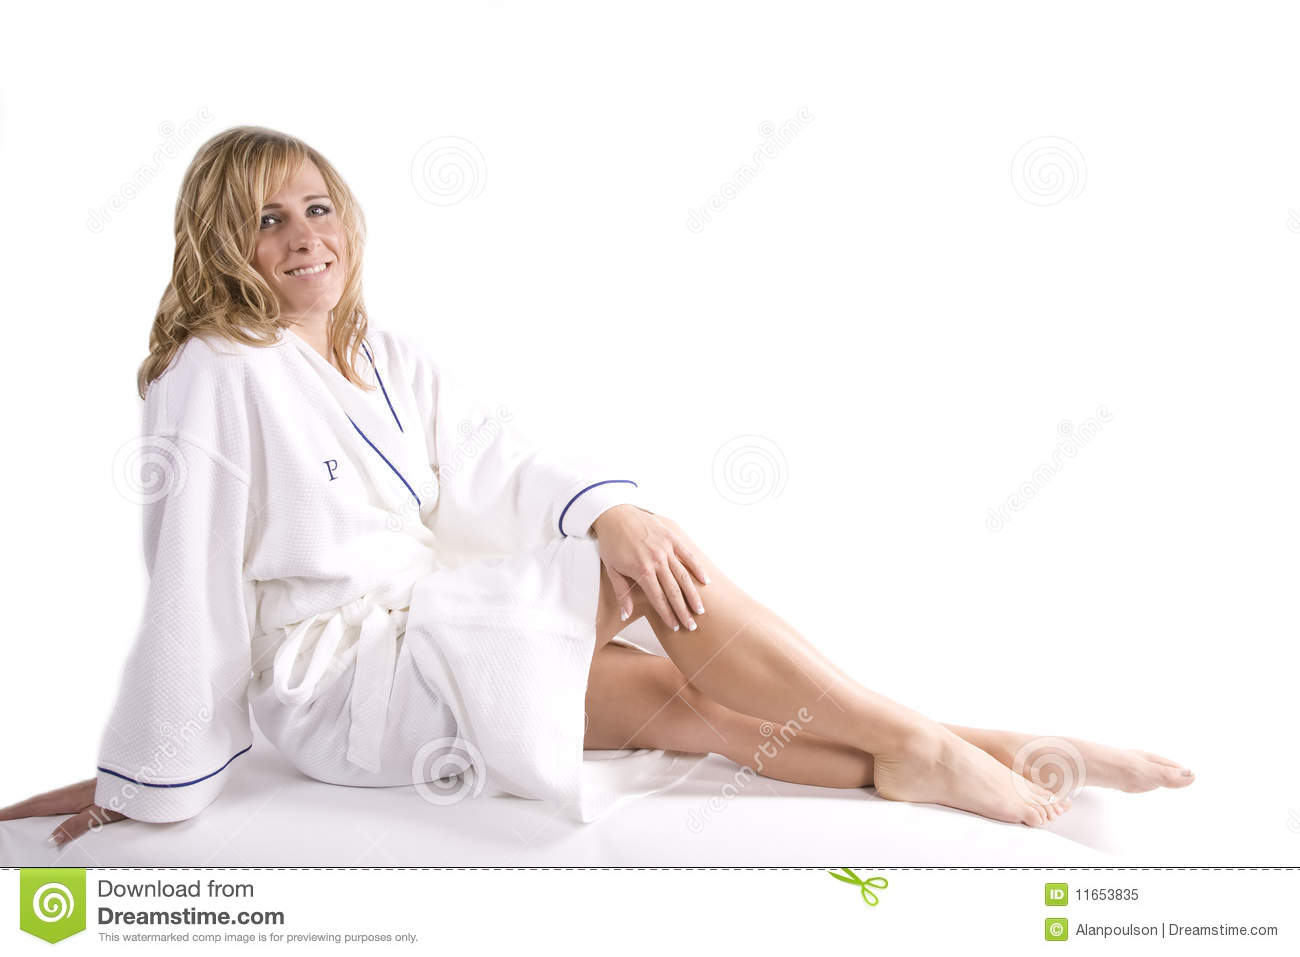 Woman Sitting In White Robe Royalty Free Stock Photo - Image: 11653835